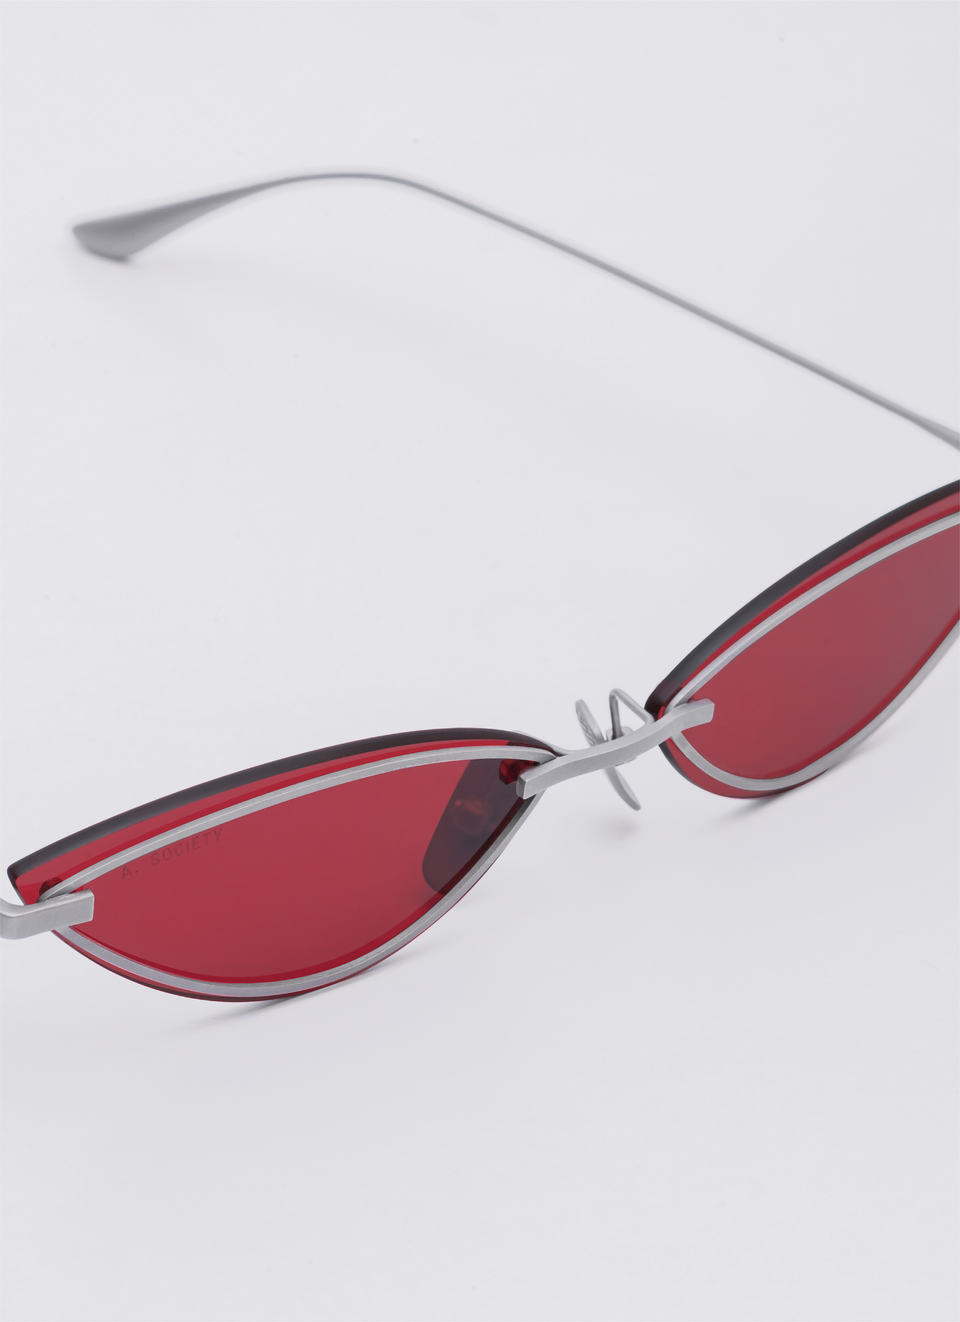 A SOCIETY LOLA - Red Titanium Cat-Eye Sunglasses Detail